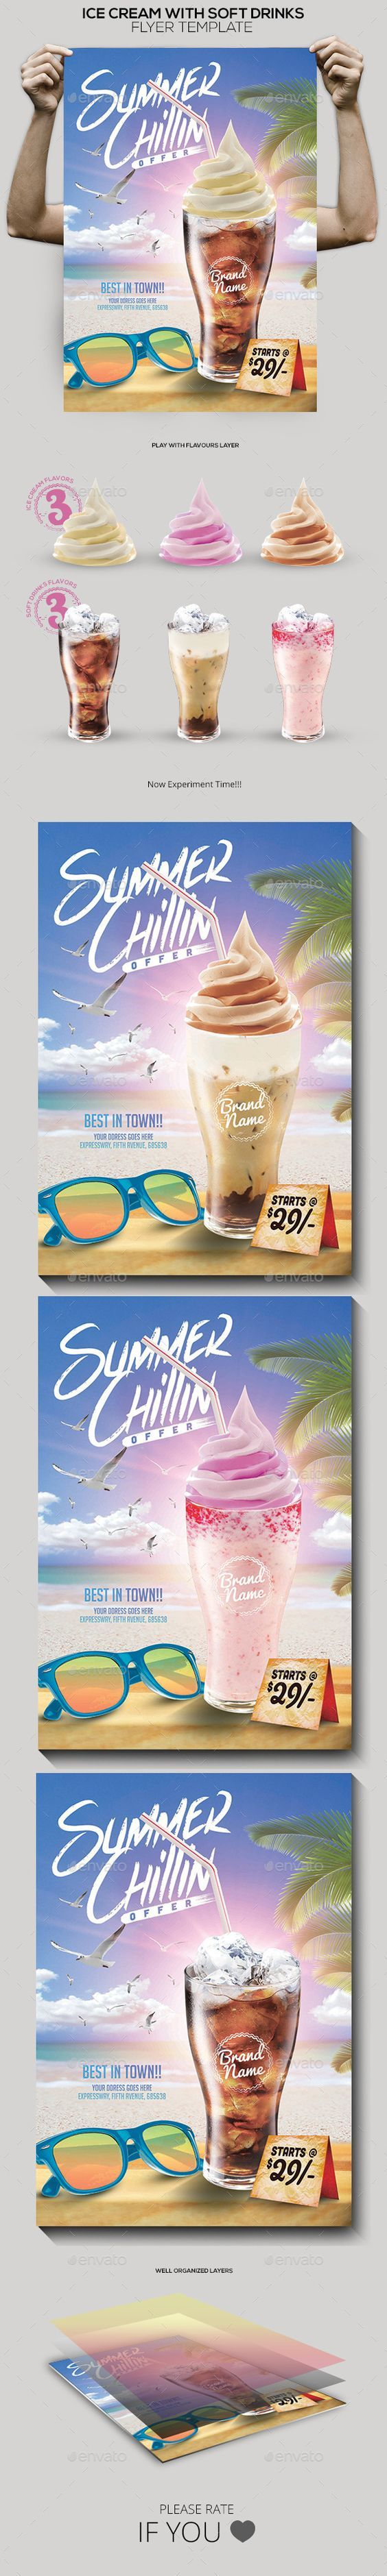 Ice Cream with Soft Drink Offer Poster Template #design Download: http://graphicriver.net/item/ice-cream-with-soft-drink-offer-poster/12262757?ref=ksioks: